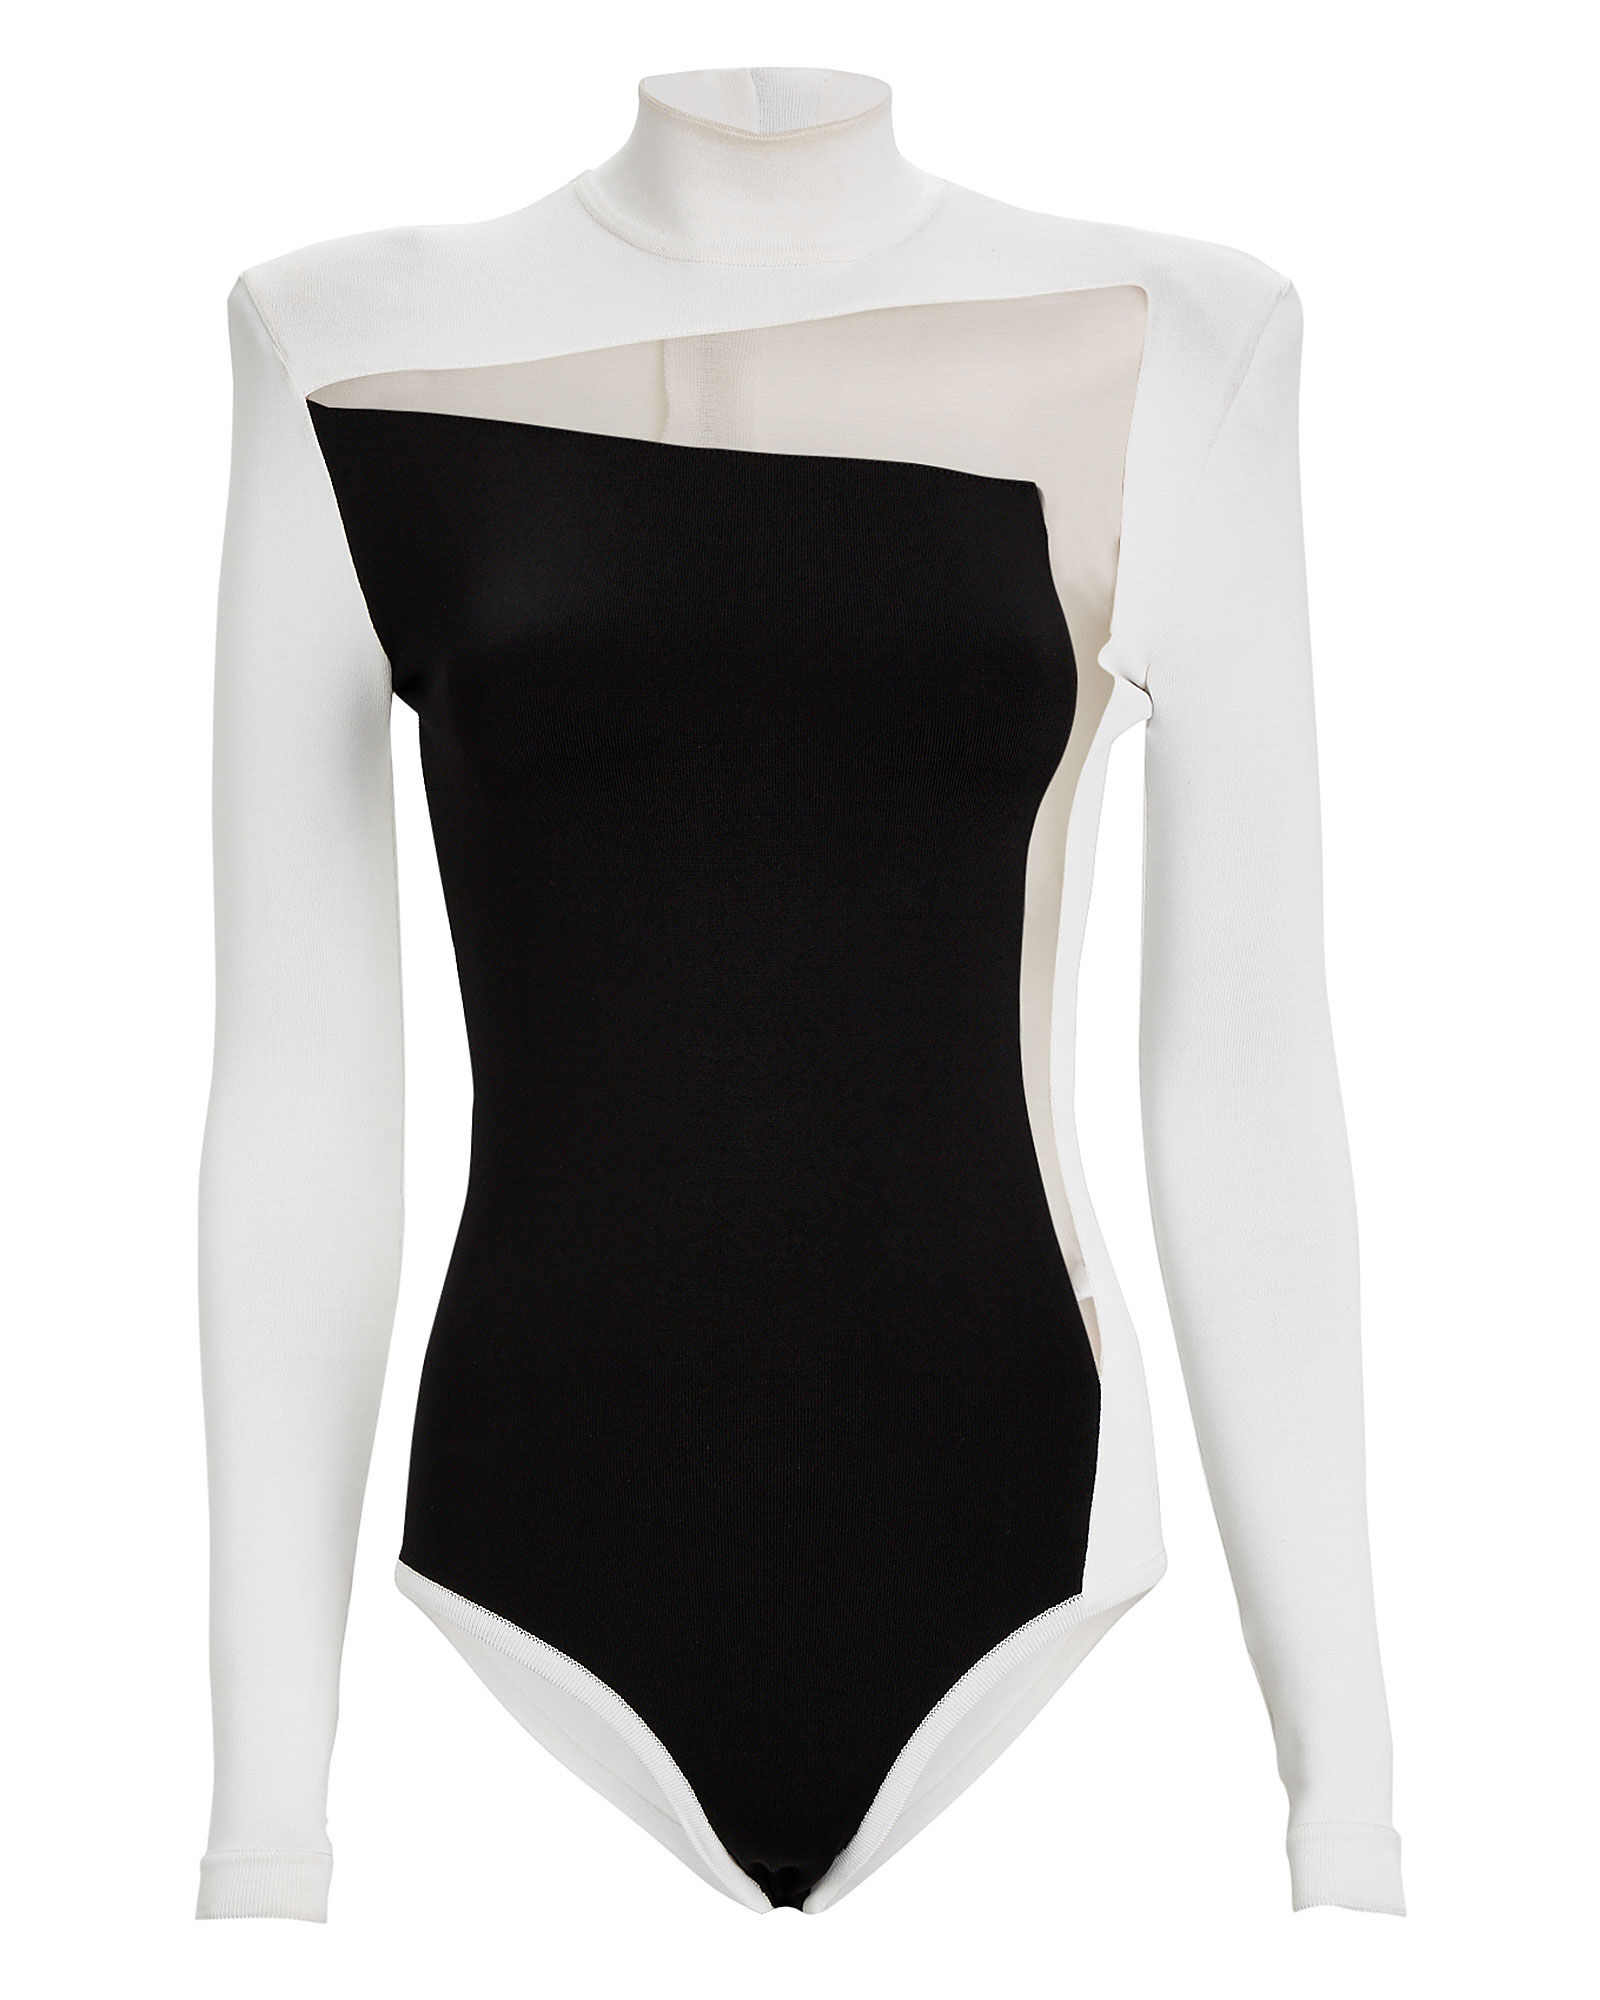 Turtleneck Cut-Out Tulle Bodysuit, BLK/WHT, hi-res